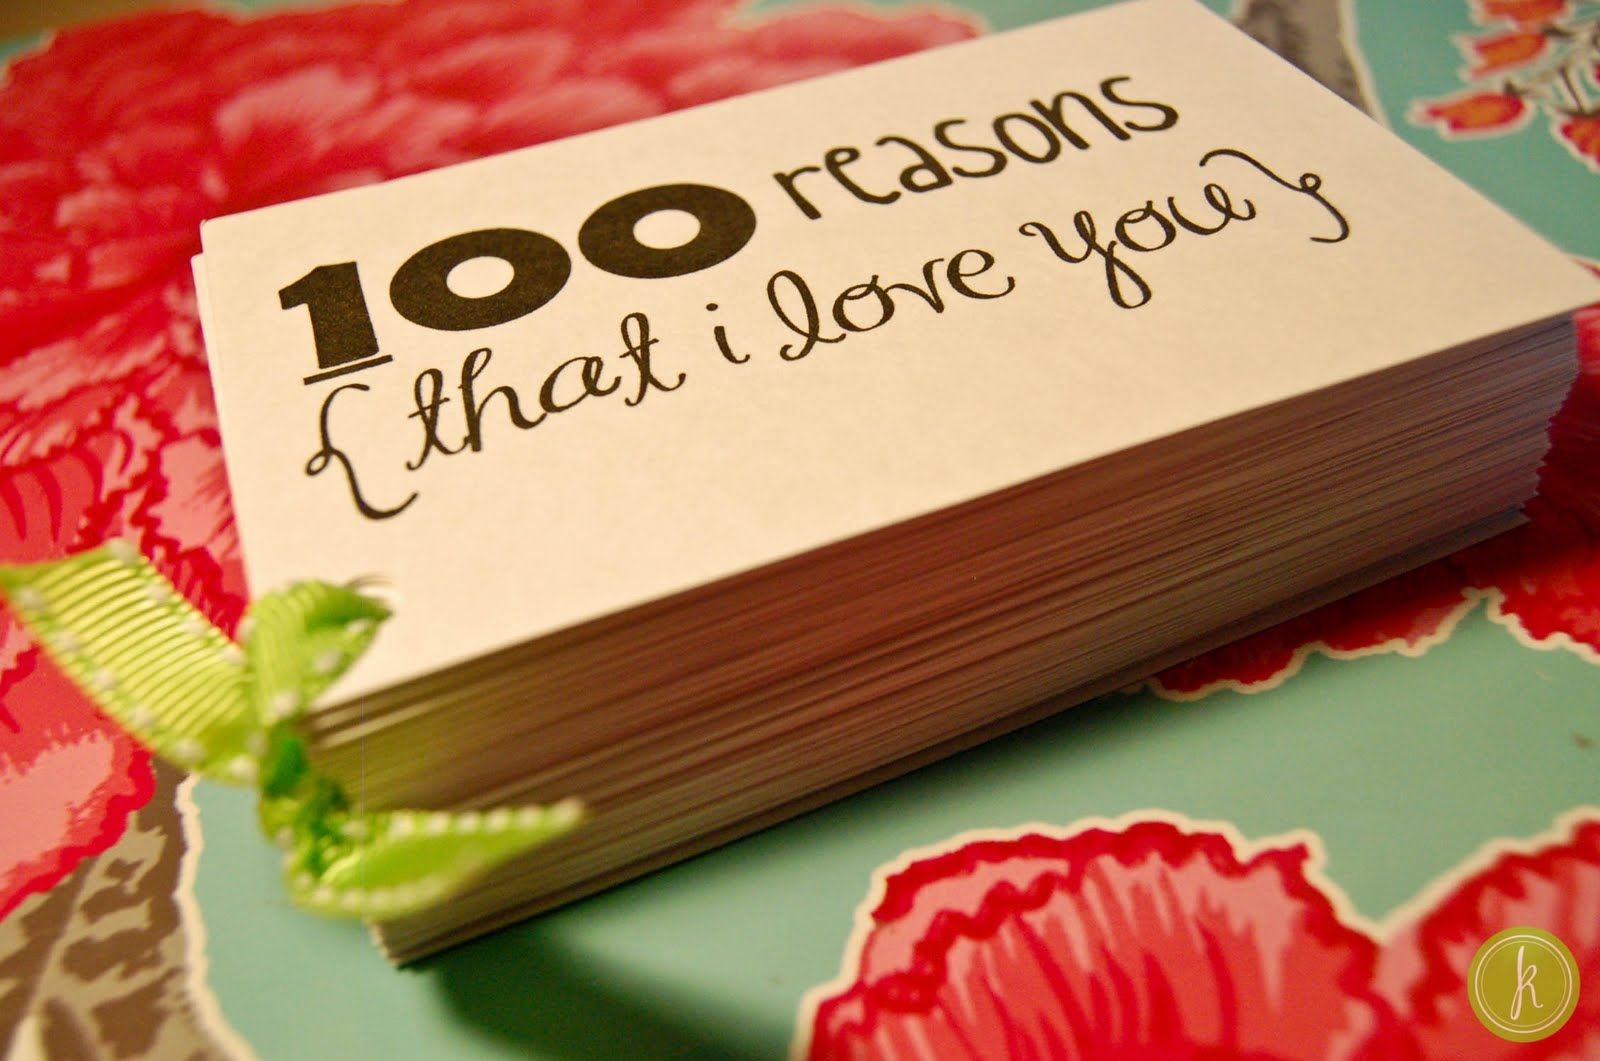 100 reasons why i love you diy and crafts pinterest craft 100 reasons why i love you as a gift adorable love negle Gallery